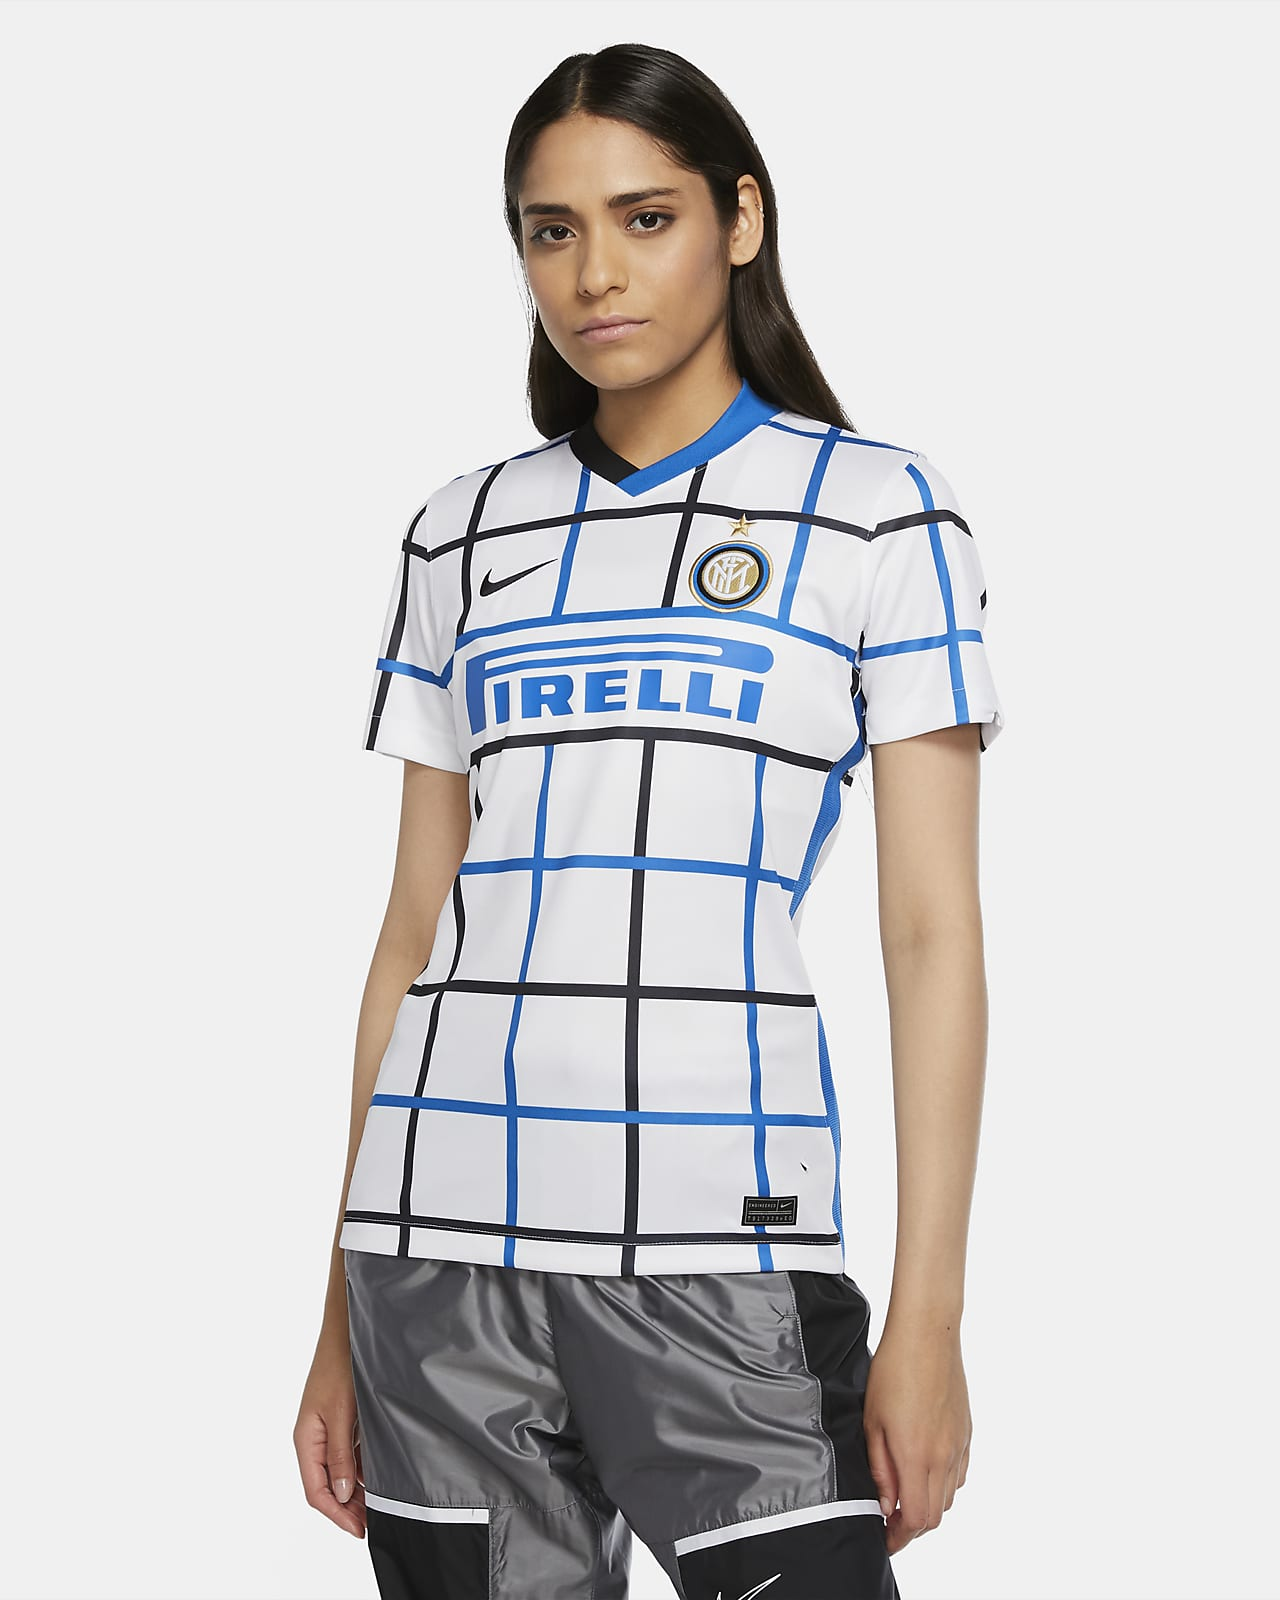 Inter Milan 2020/21 Stadium Away Women's Football Shirt